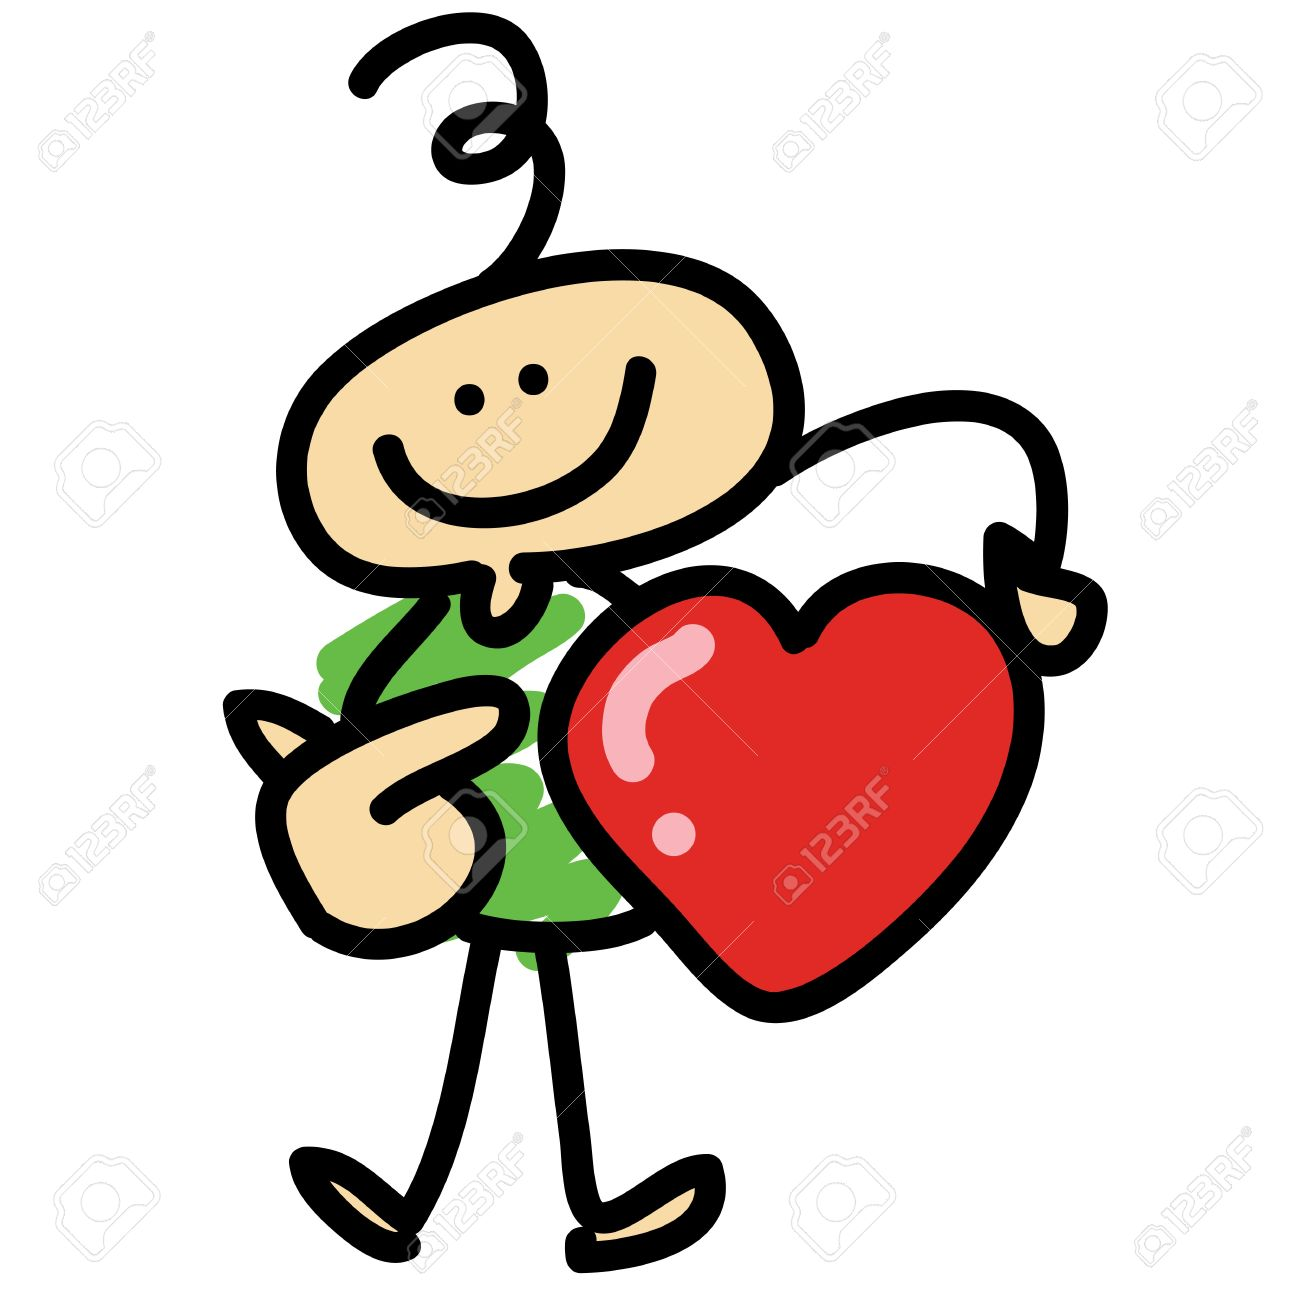 Cartoon Hand-drawn Love Concept Showing Heart Royalty Free Cliparts,  Vectors, And Stock Illustration. Image 16325559.